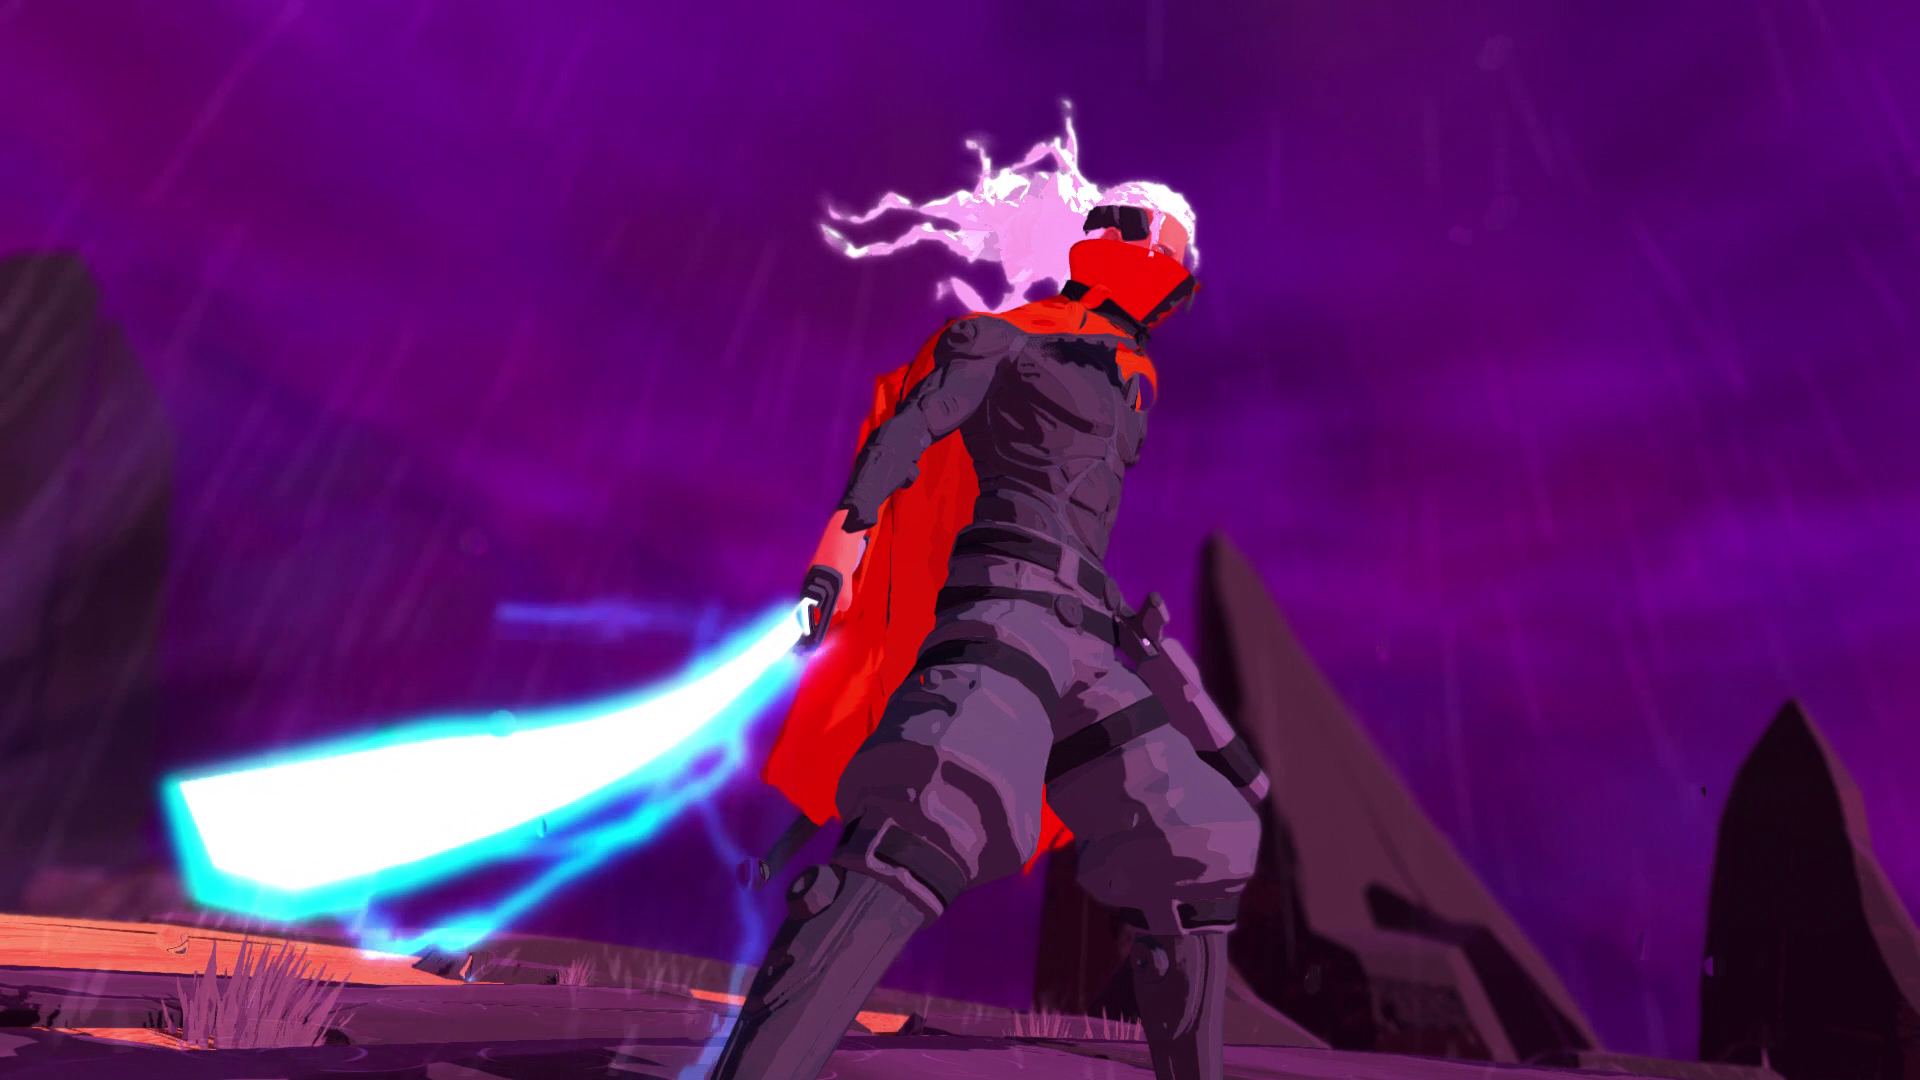 Furi coming to Switch in early 2018